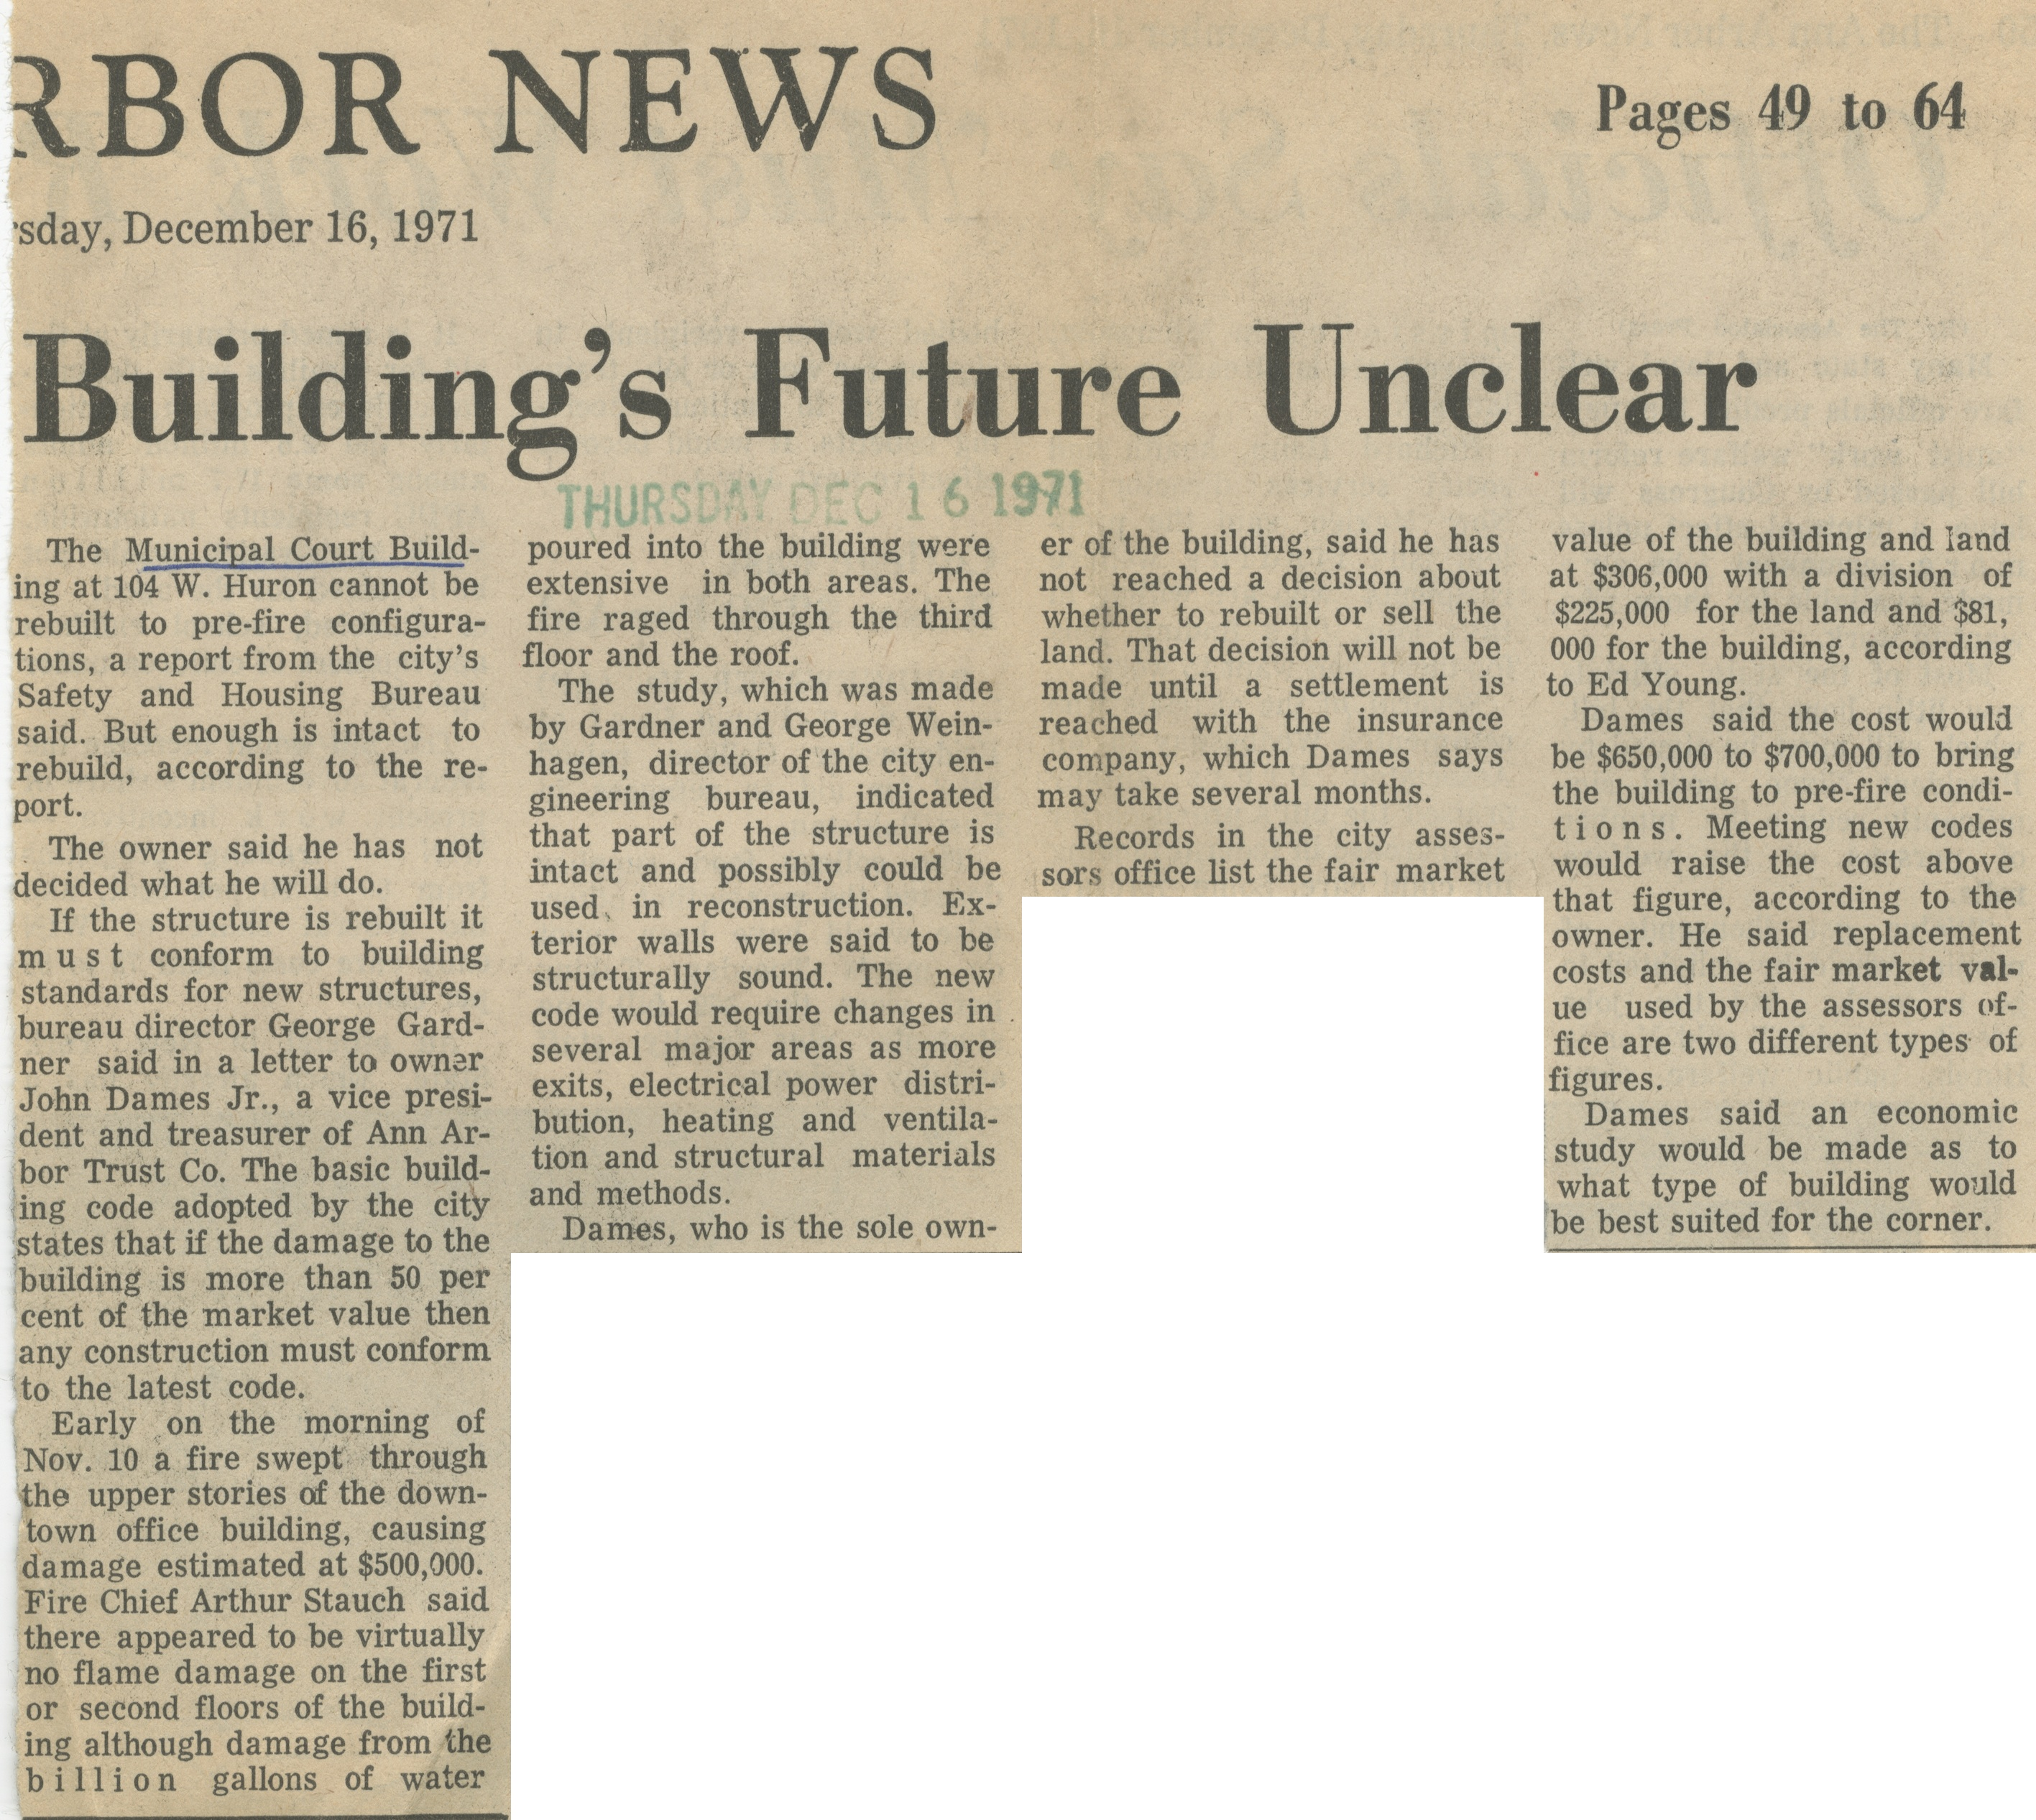 Building's Future Unclear image